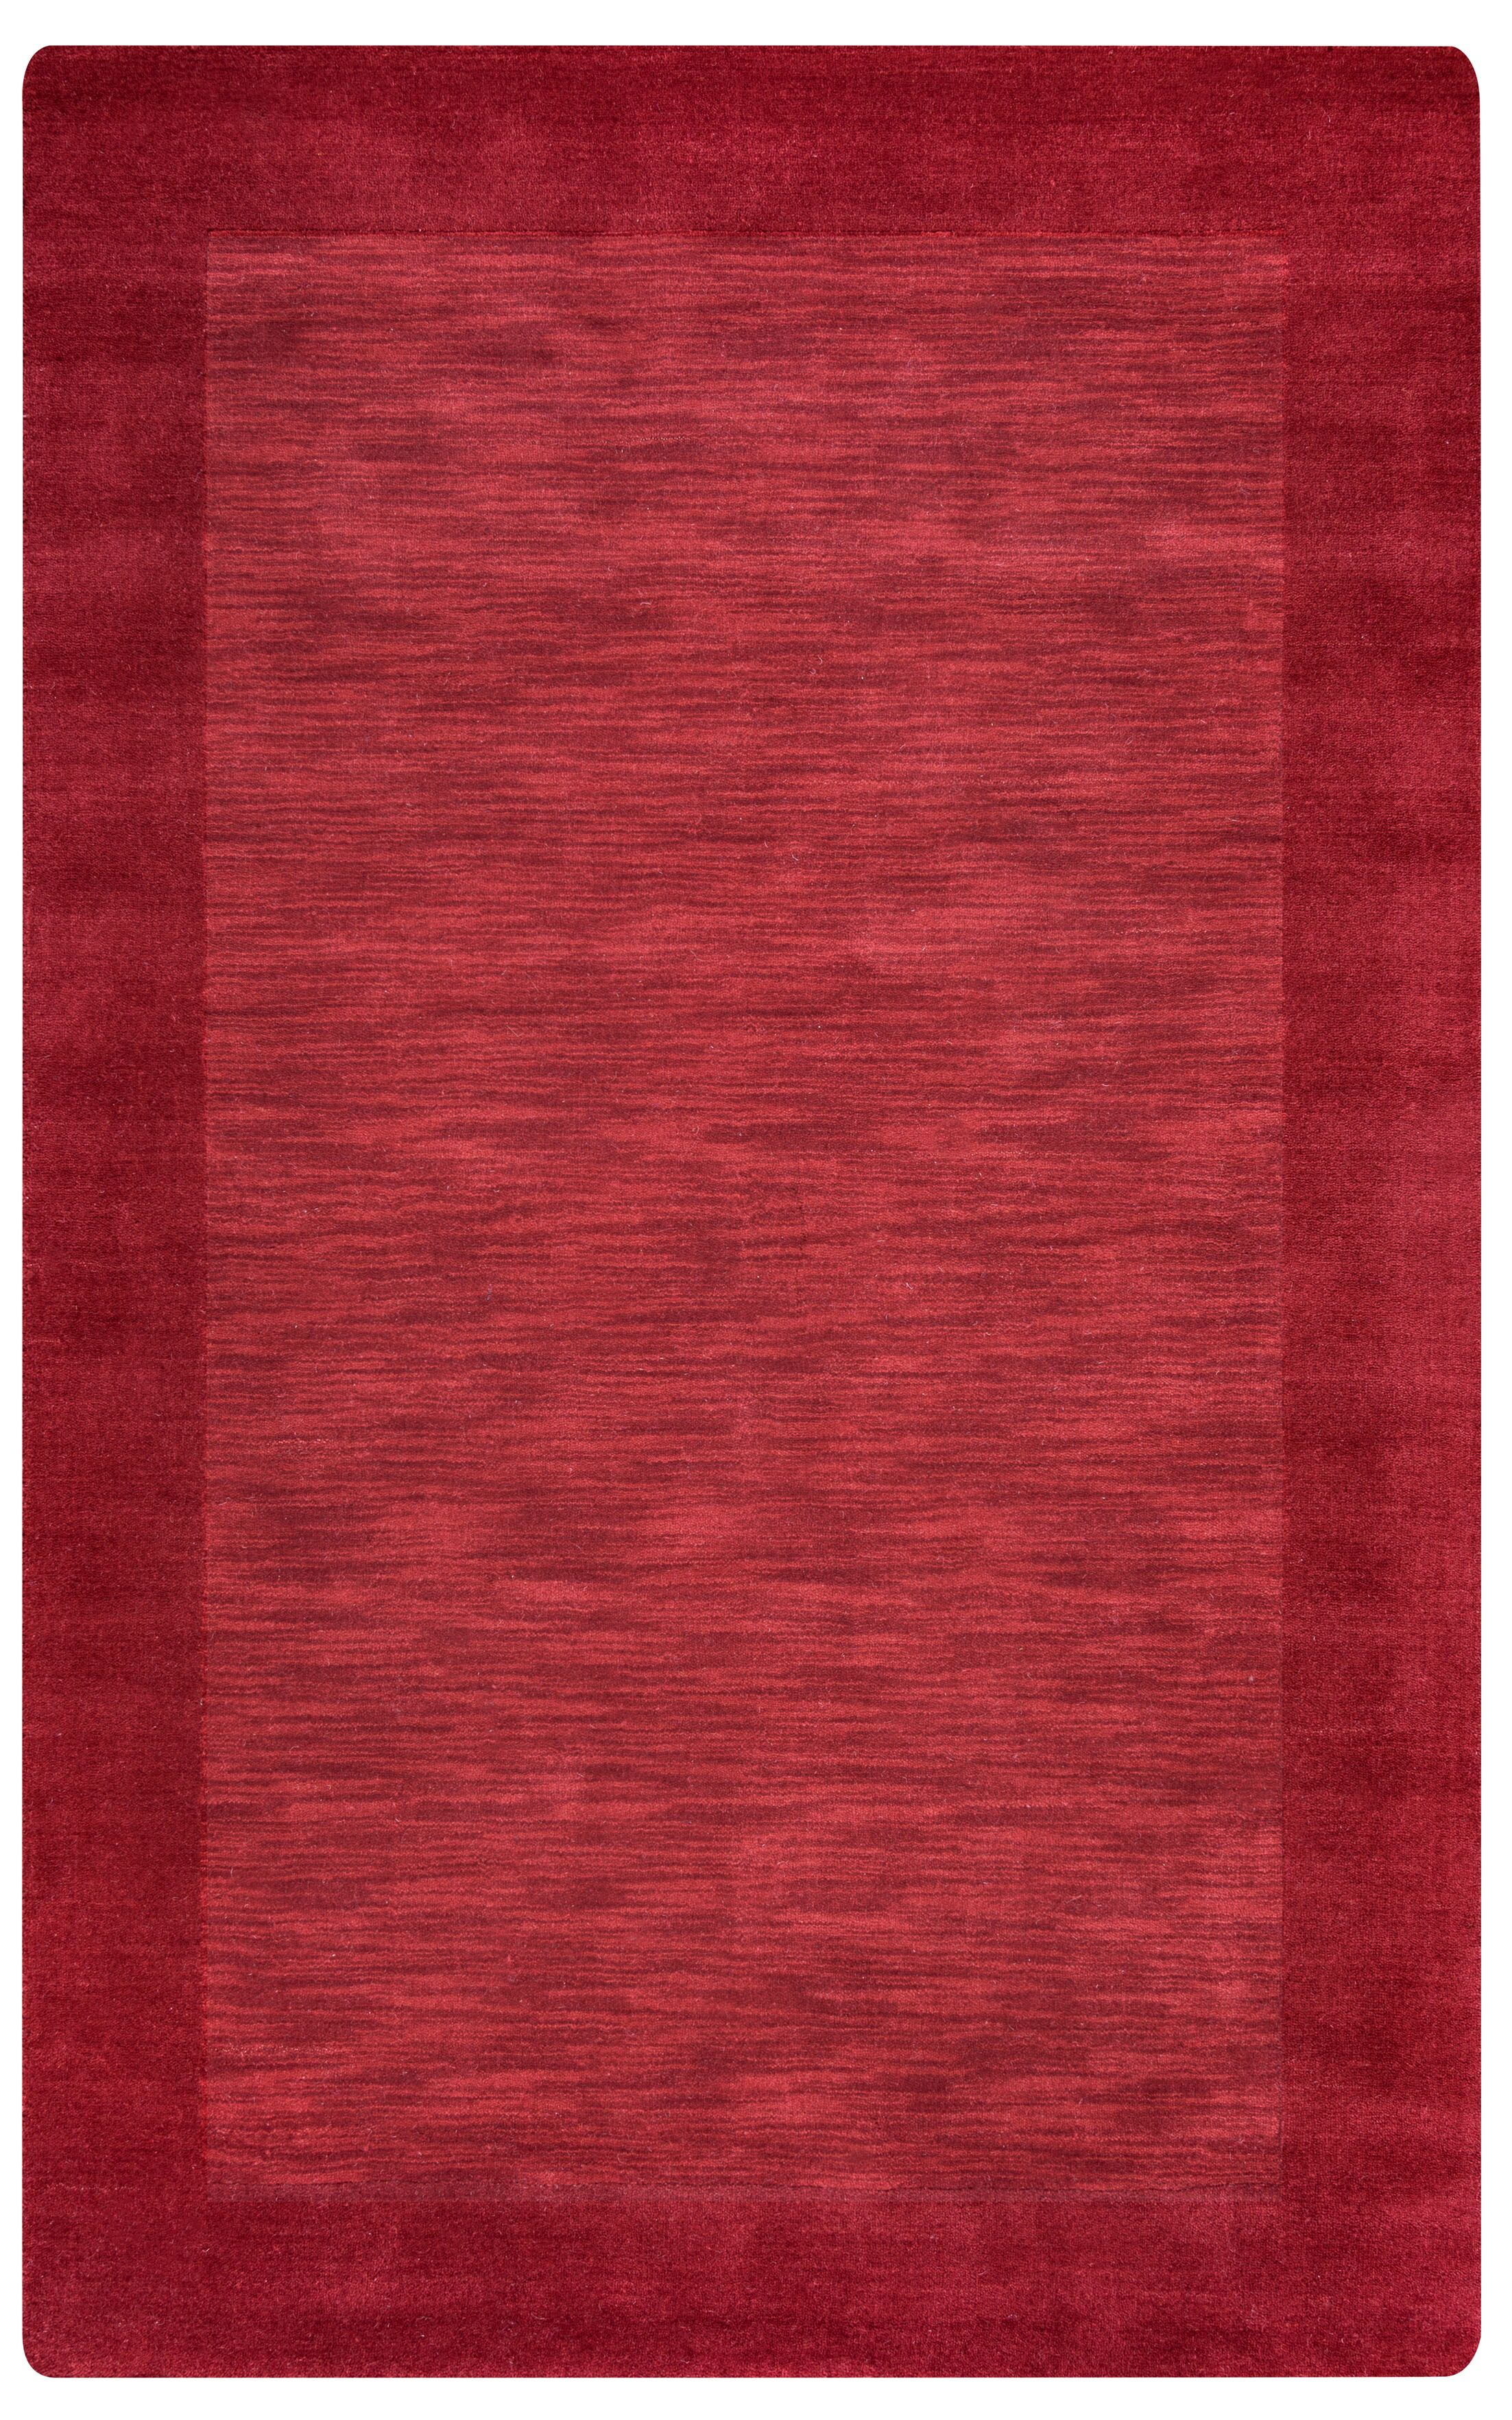 Hand-Woven Red Area Rug Rug Size: Rectangle 5' x 8'